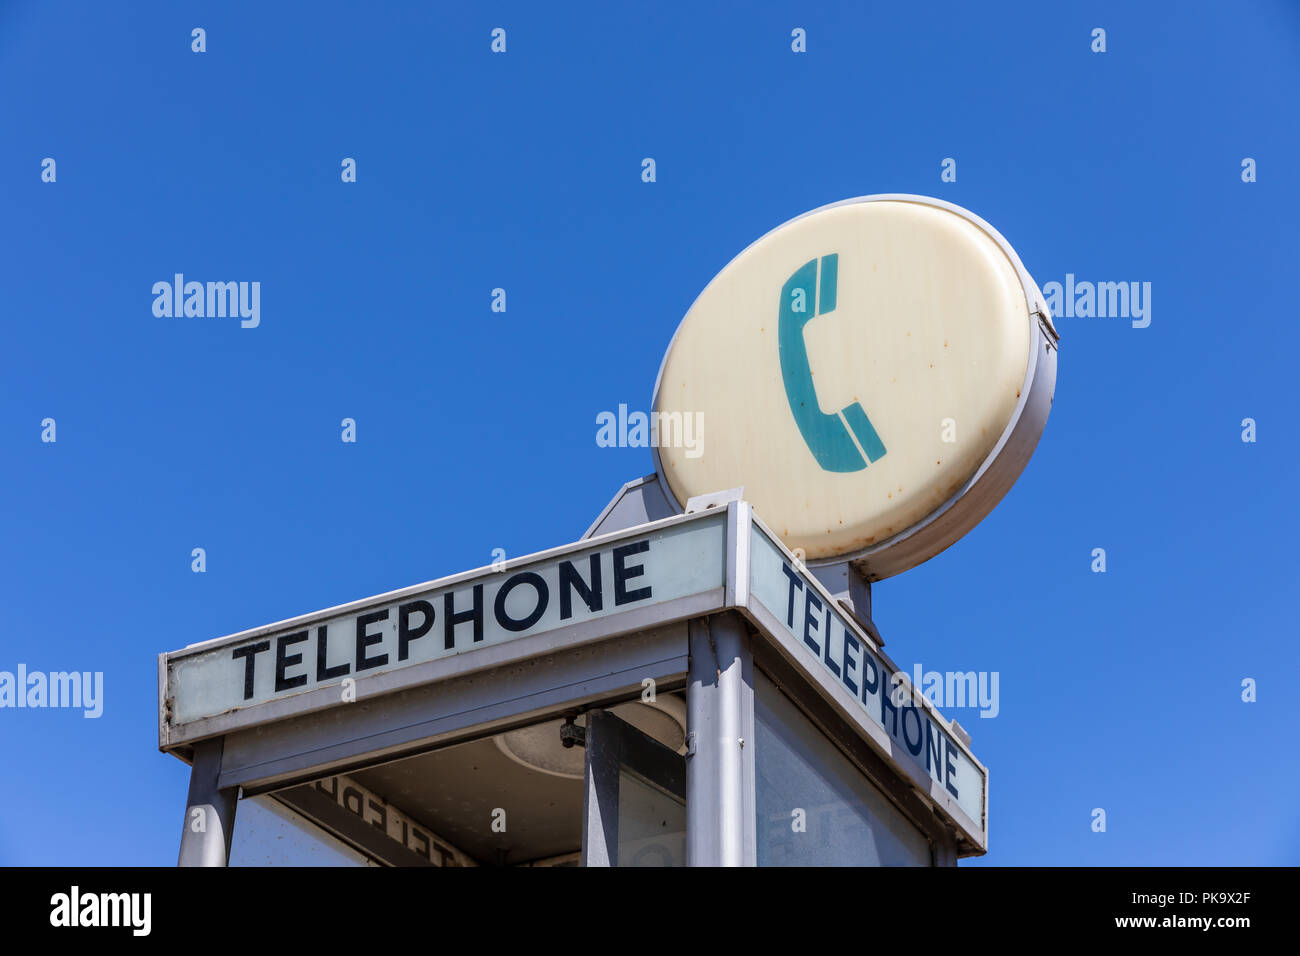 Telephone sign on phone booth; California, USAStock Photo